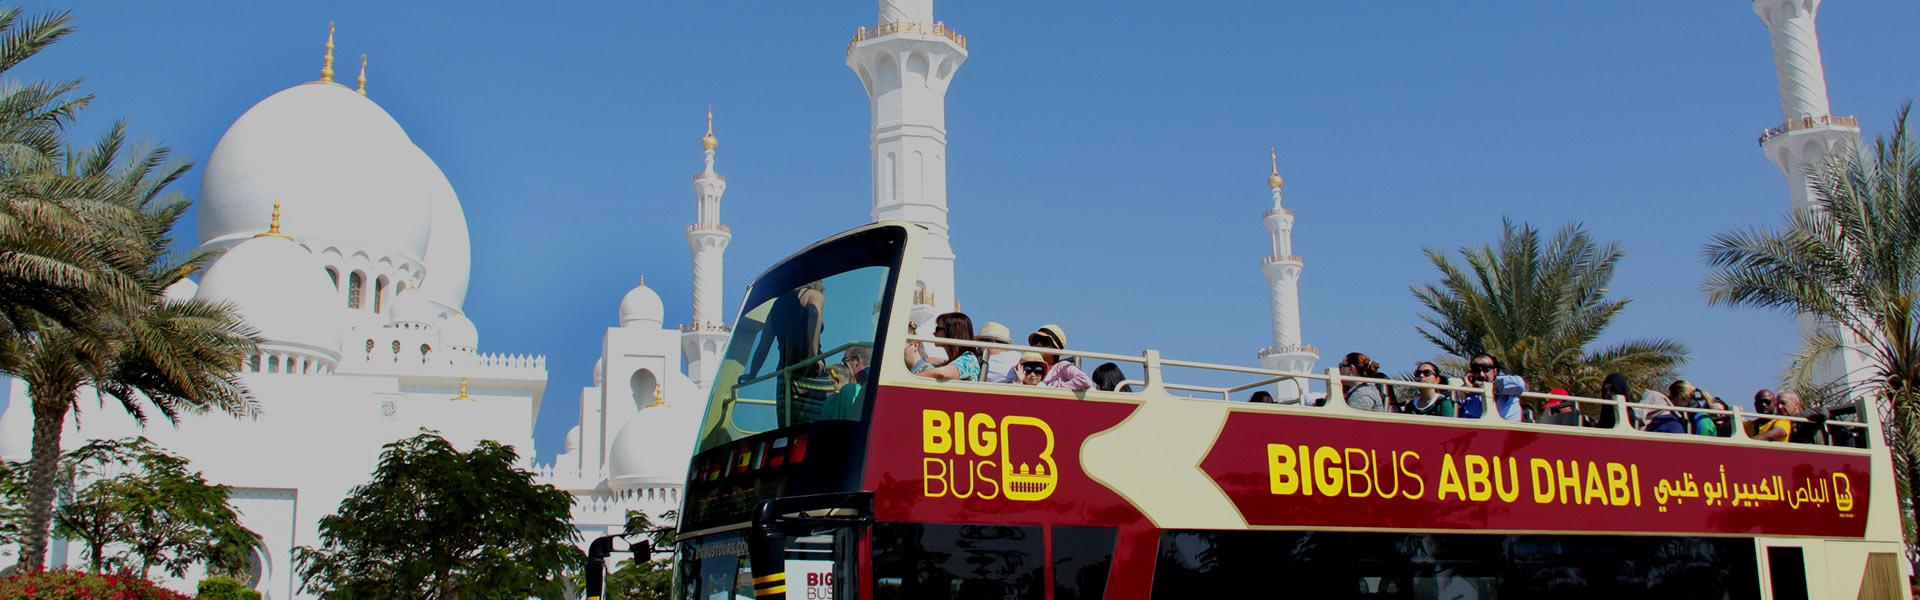 Abu Dhabi sightseeing tours with Big Bus